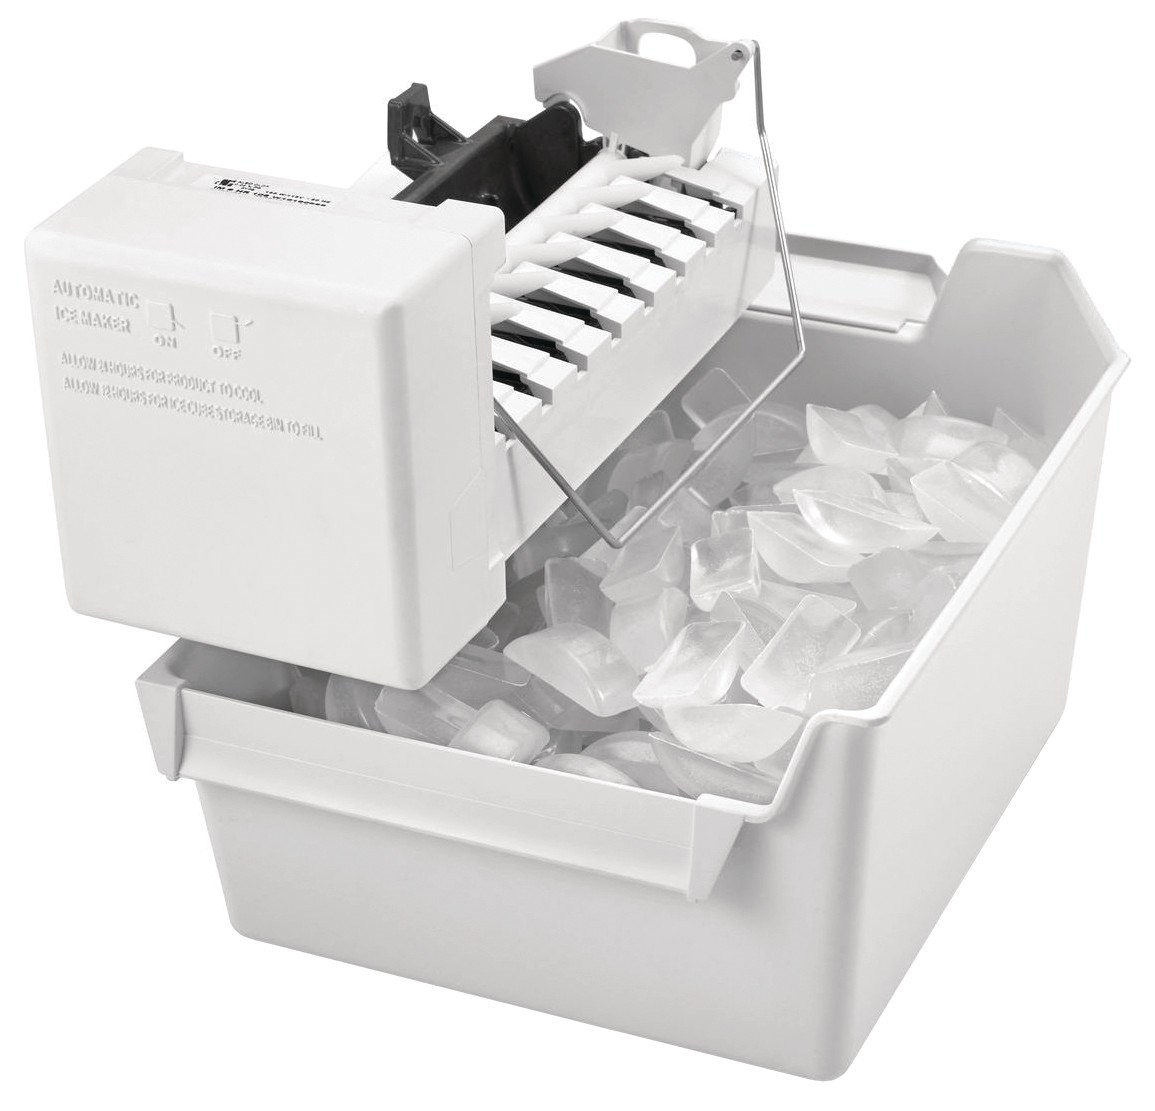 kenmore ice maker kit. kenmore icemaker kit, 46-08560 ice maker kit :